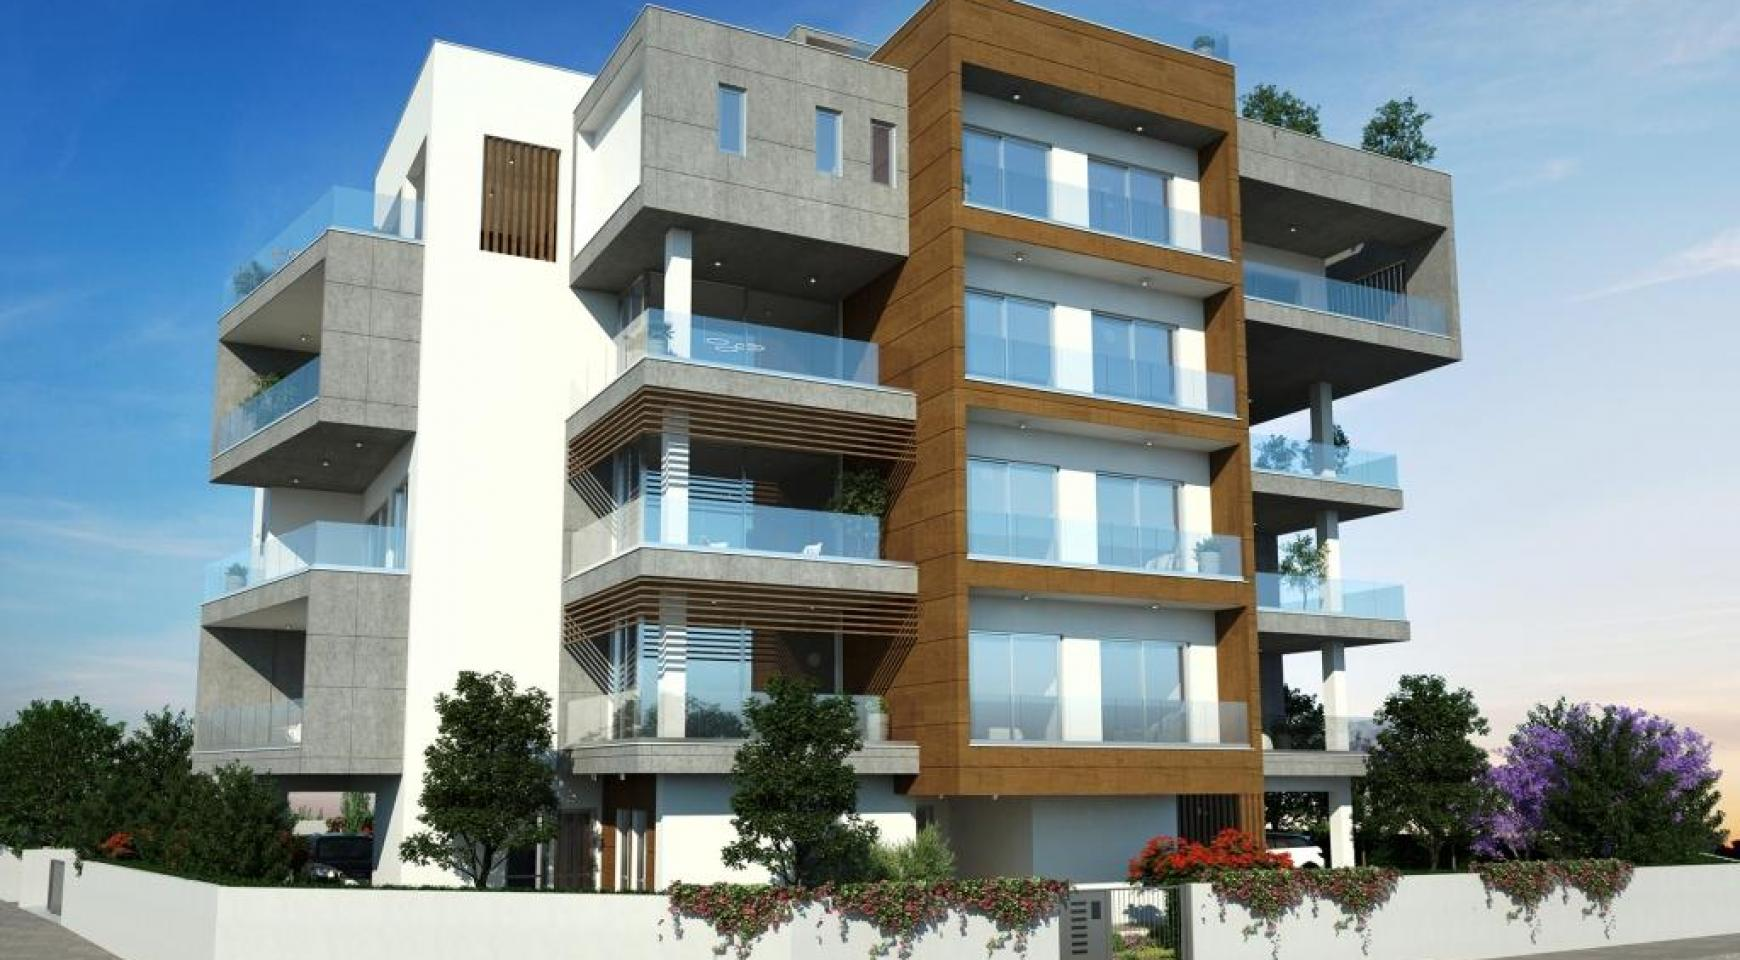 New Modern 3 Bedroom Apartment in Mesa Geitonia - 3